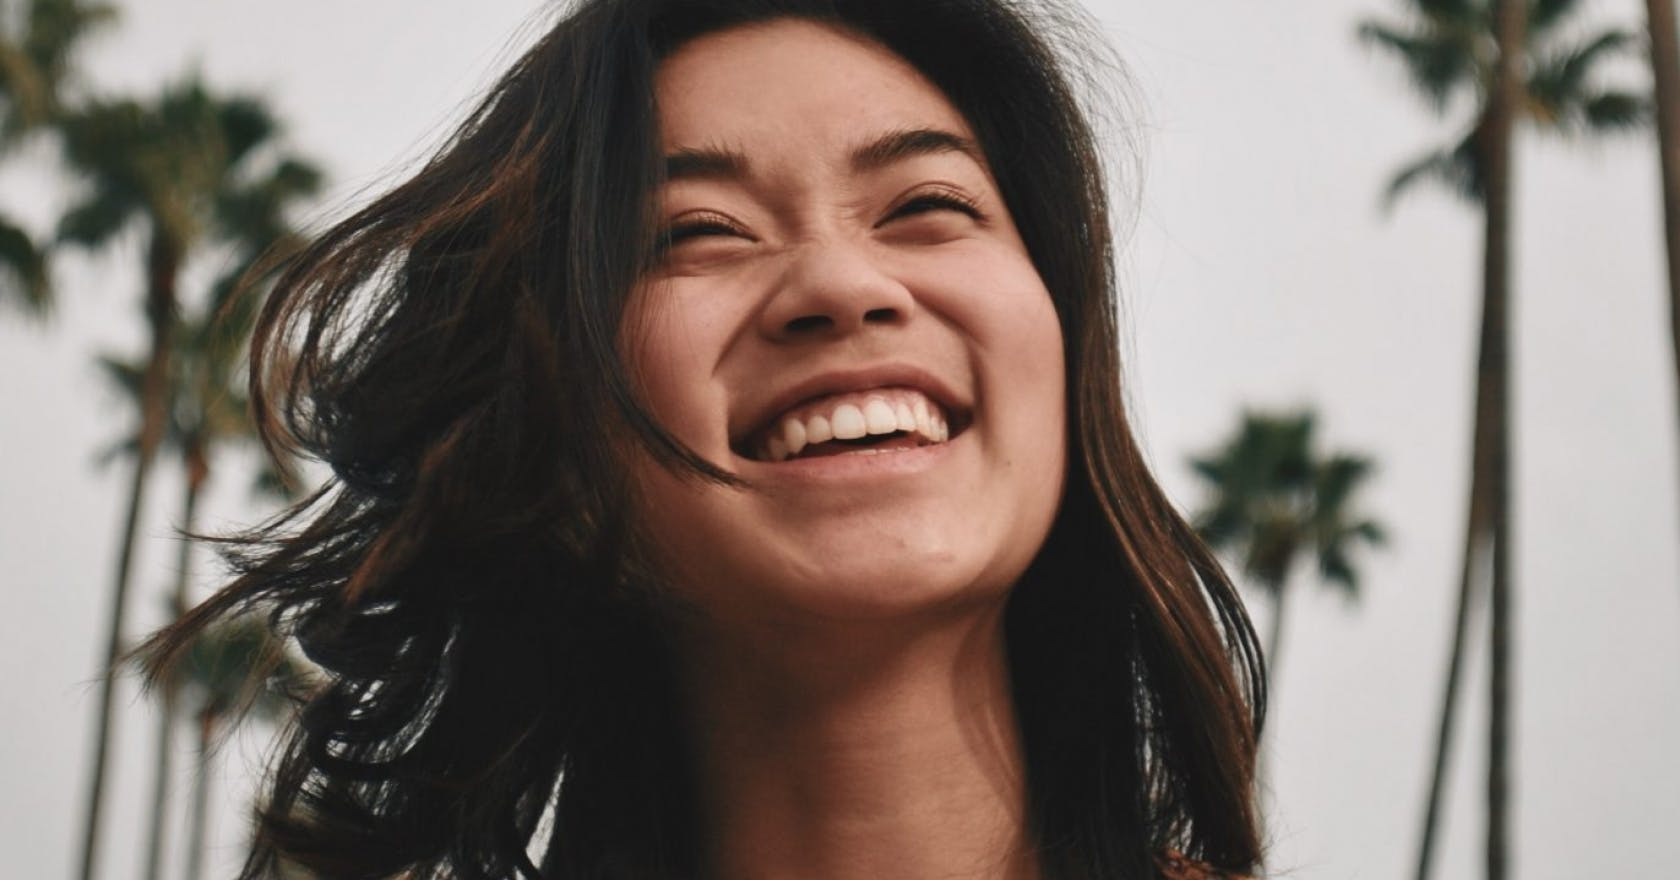 3 ways to think more positively, because the negativity bias is real